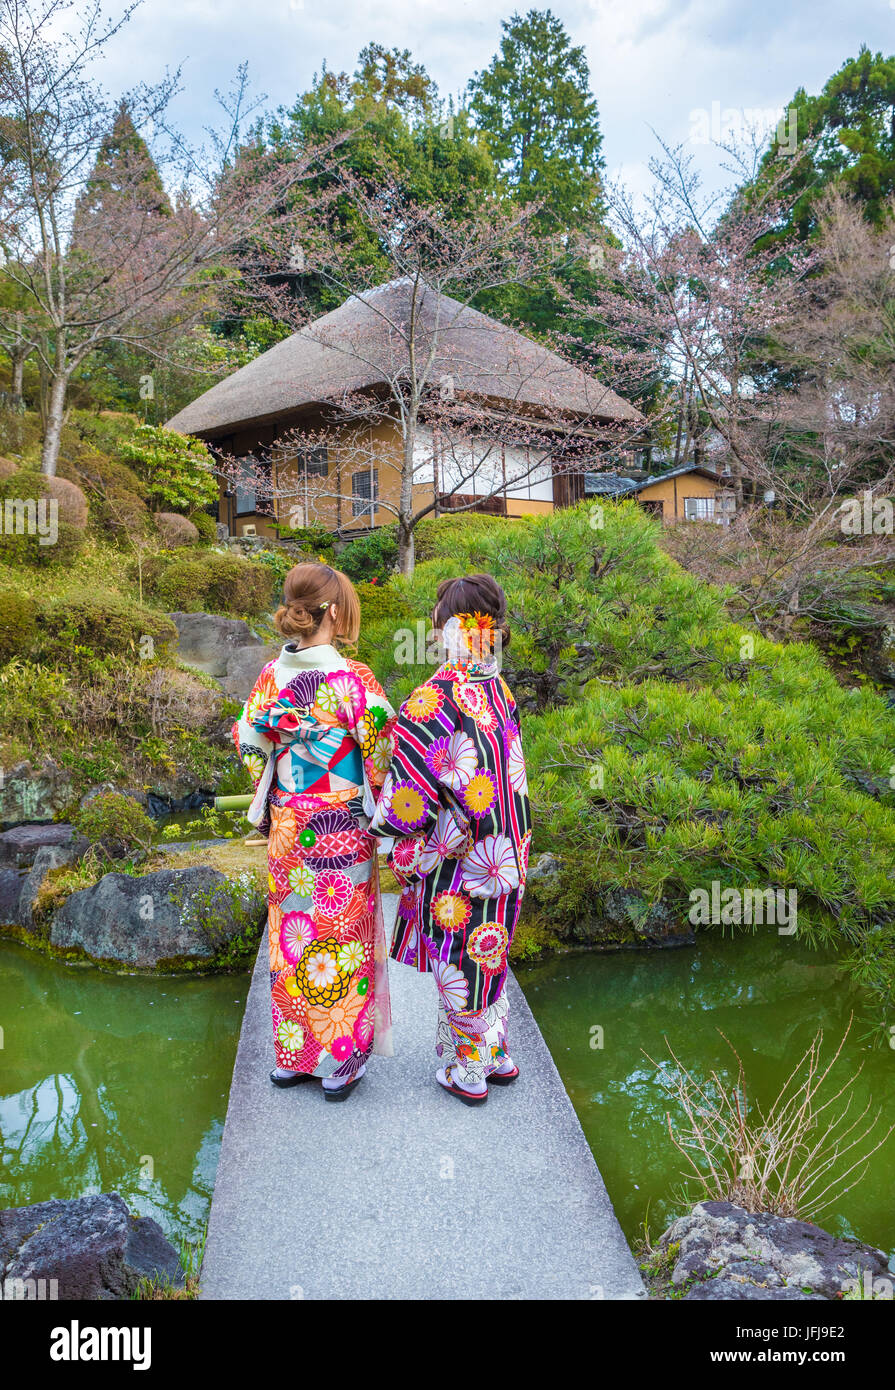 Japan, Kyoto City, girls at garden - Stock Image